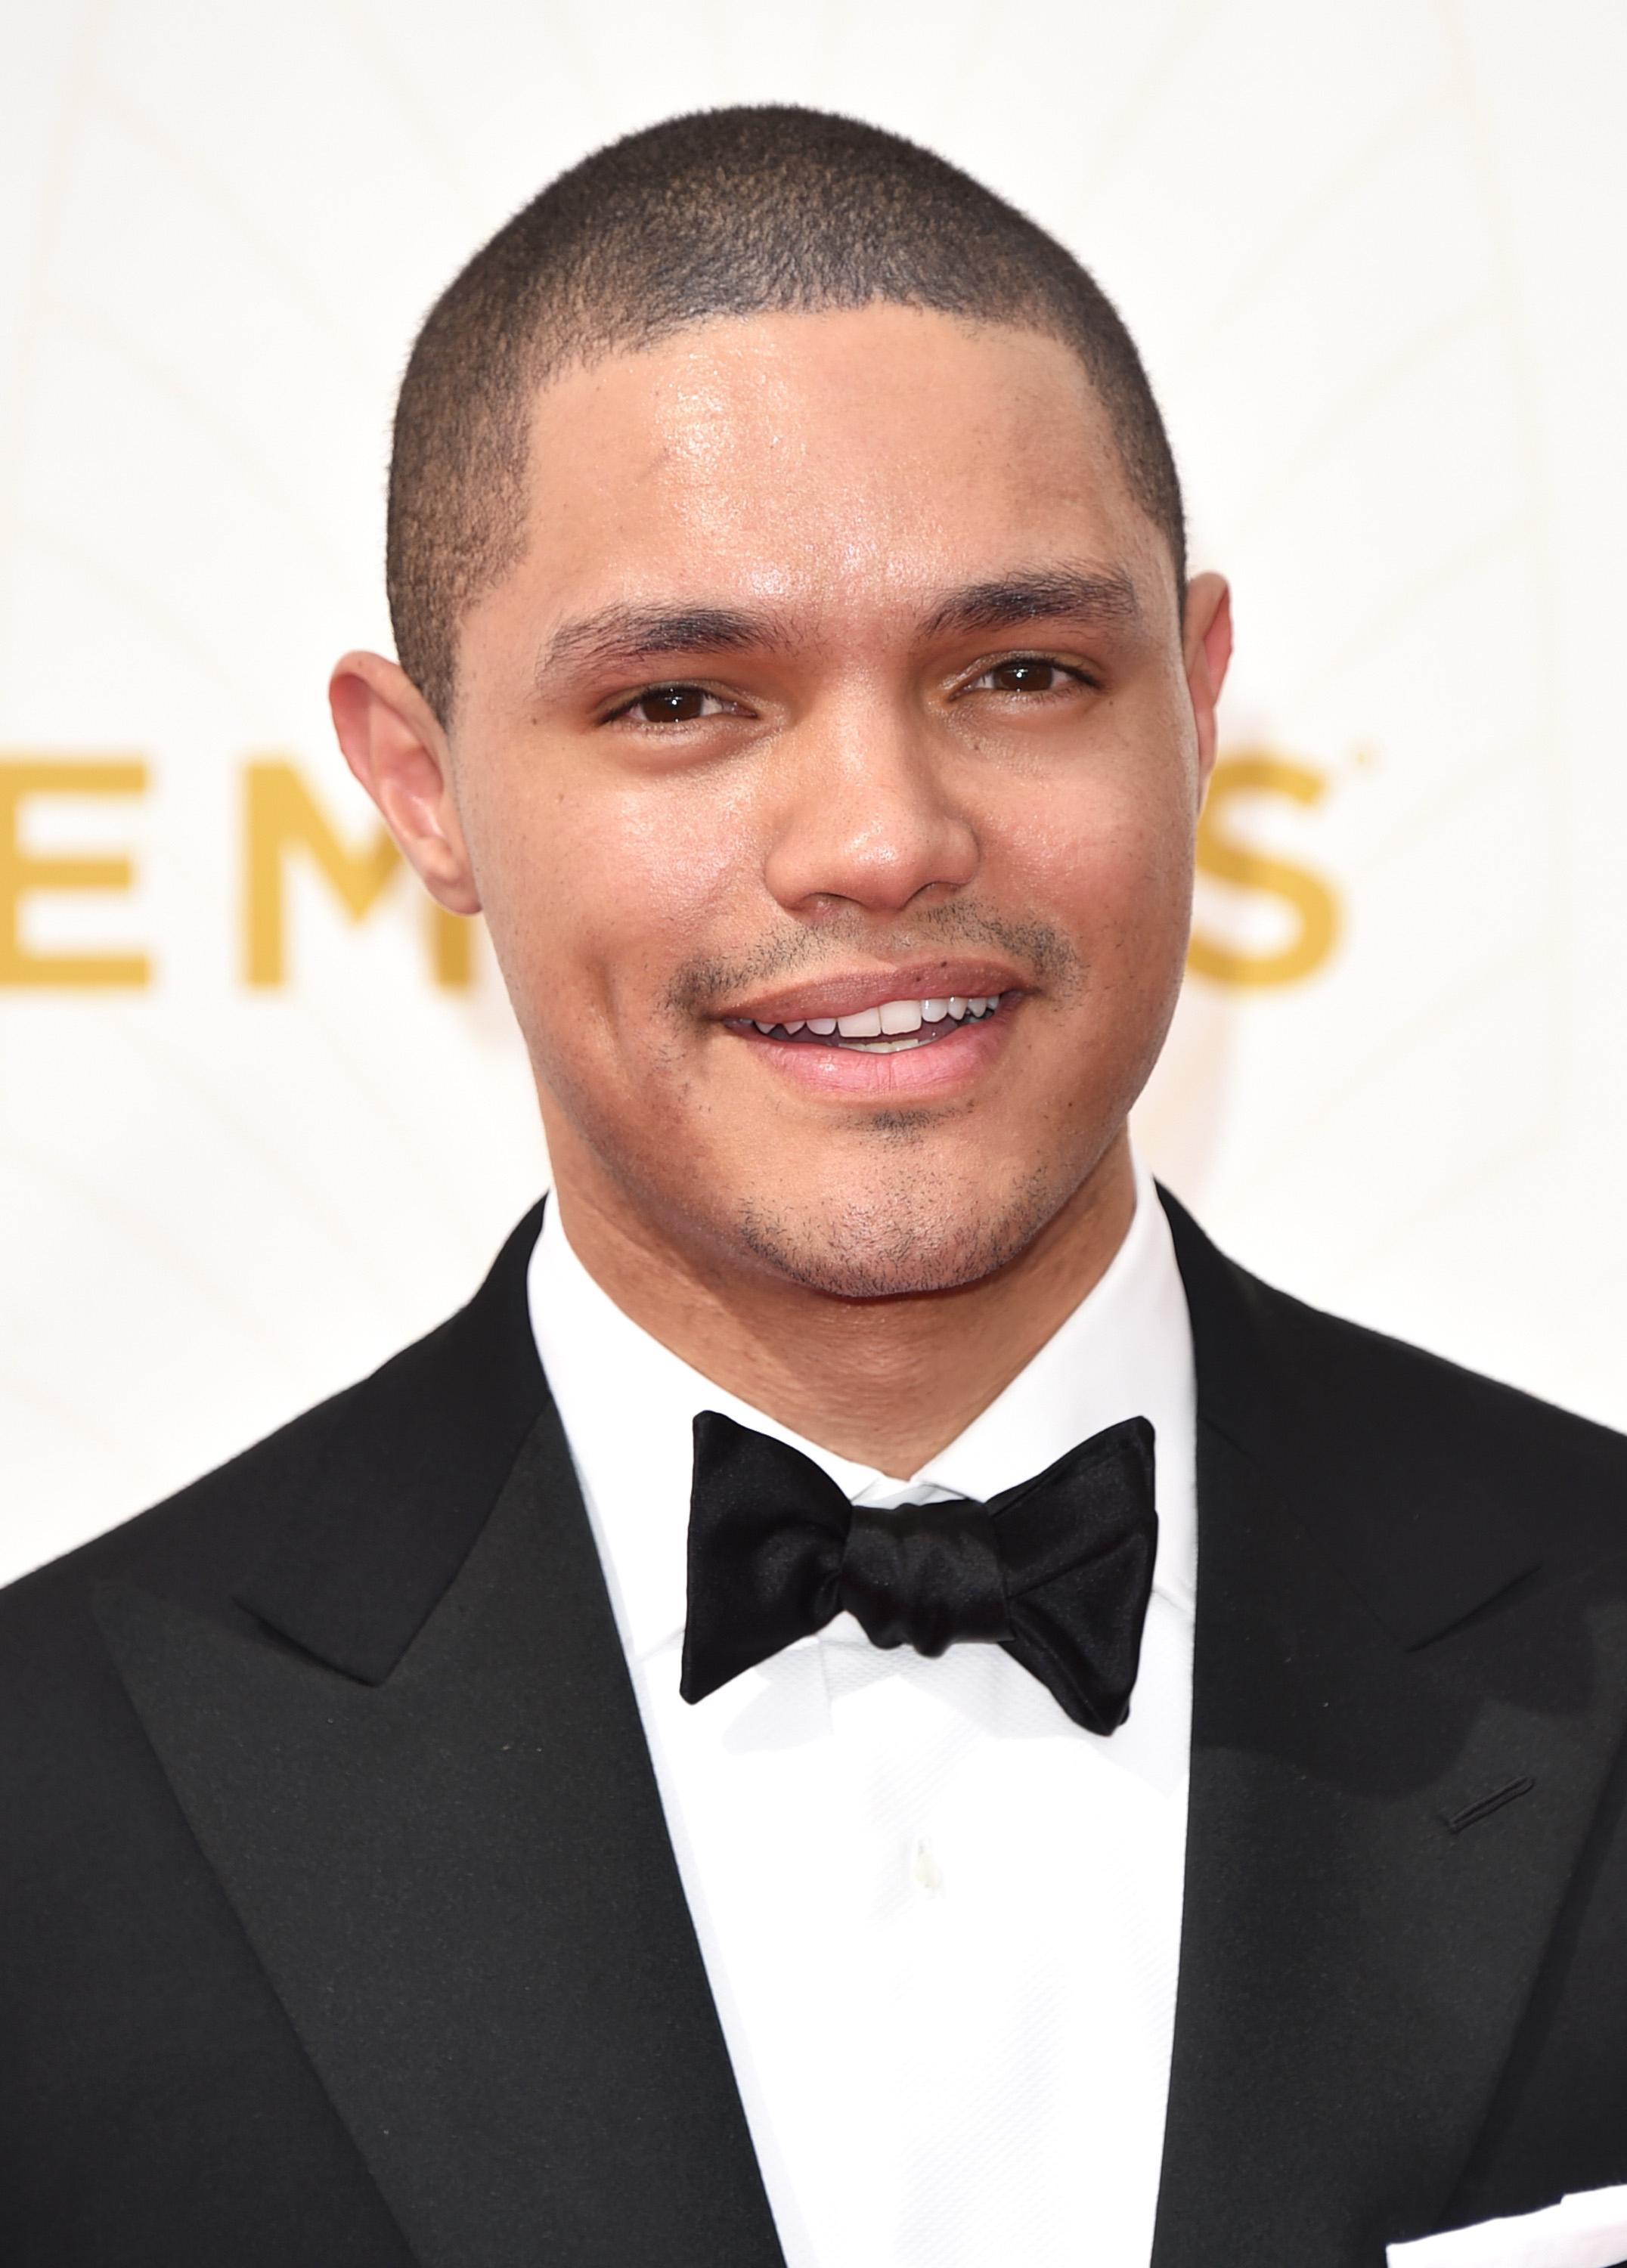 Trevor Noah at the 67th Annual Primetime Emmy Awards in Los Angeles on Sept. 20, 2015.